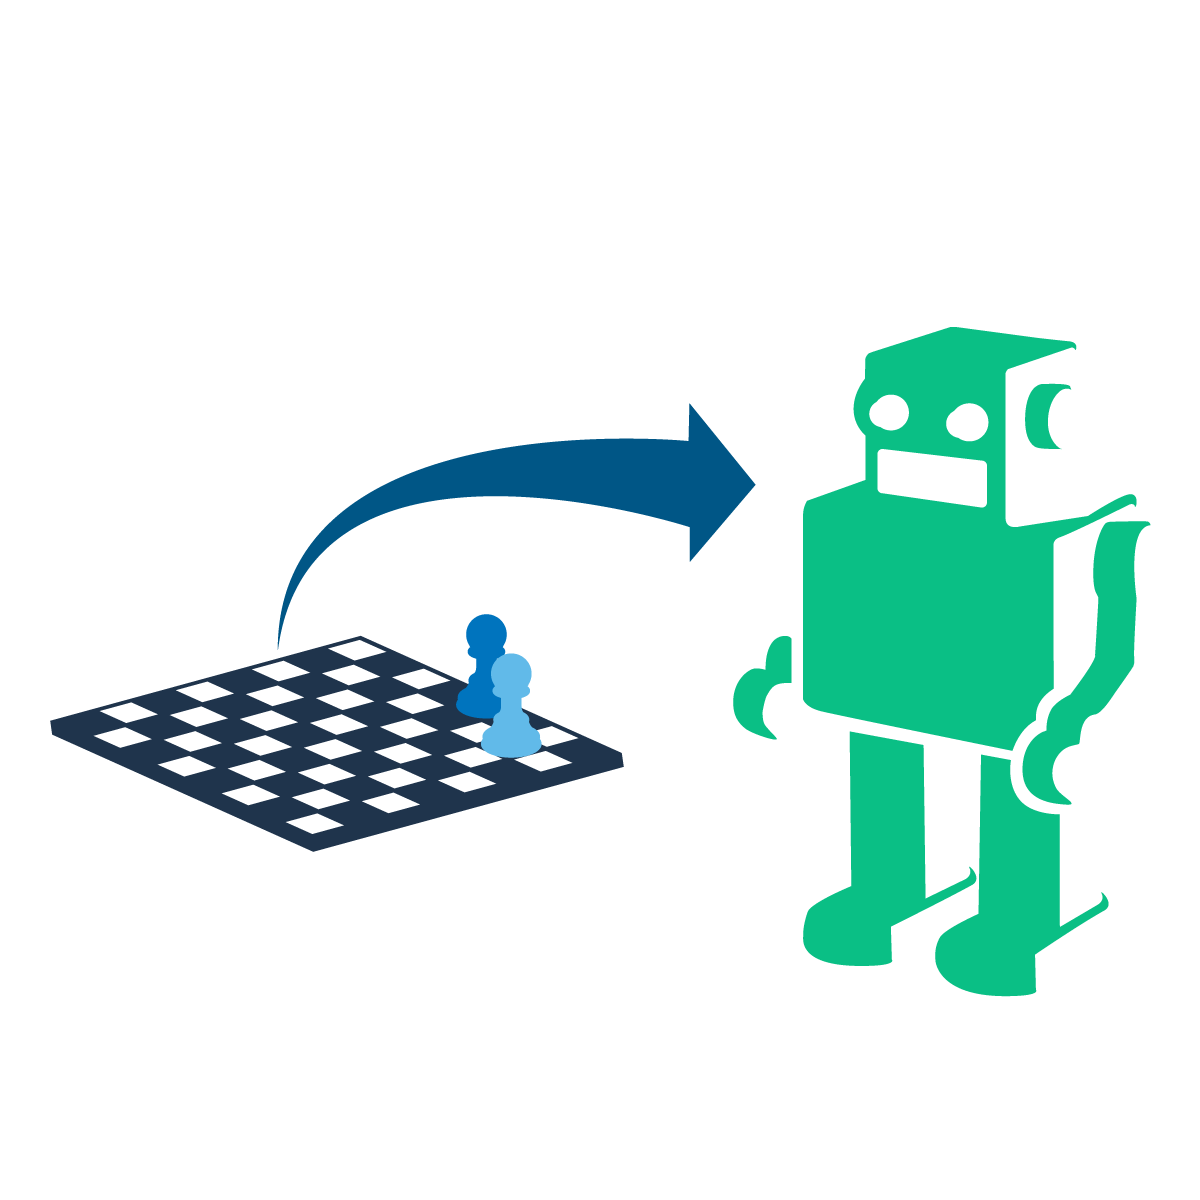 Chess board and arrow to robot graphic